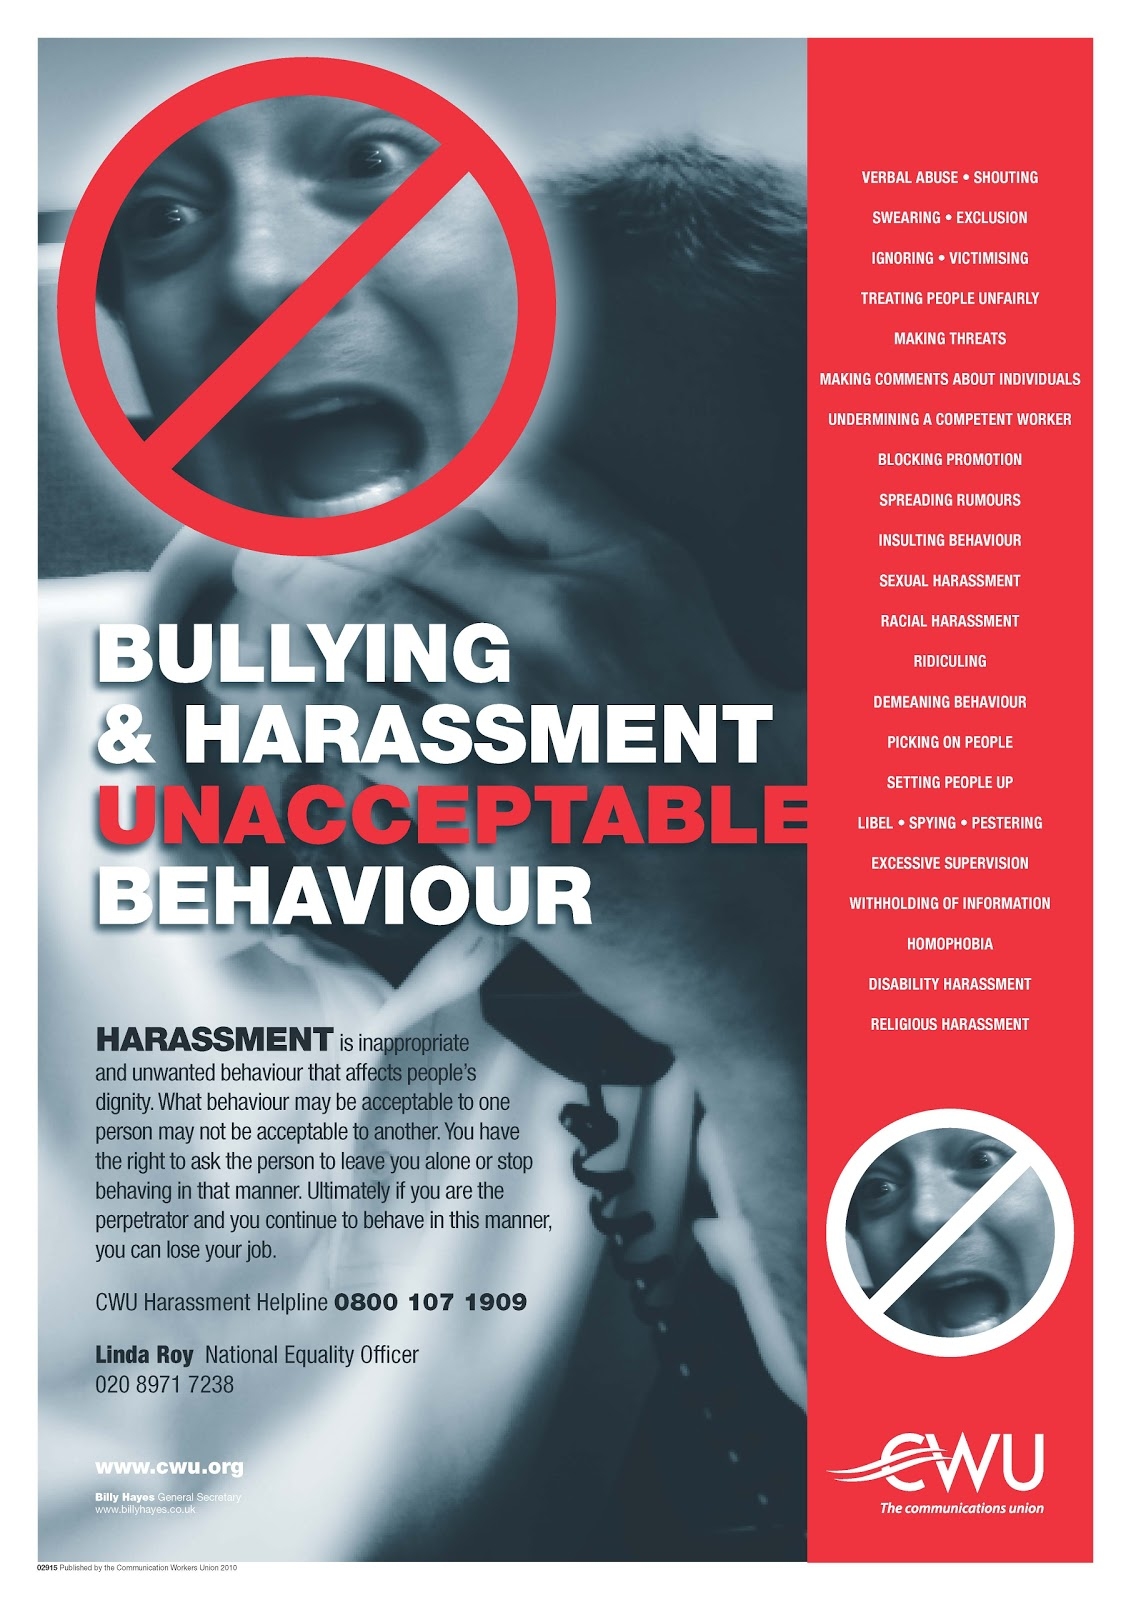 bullying and harassment in the workplace Harassment and bullying remain significant workplace issues despite increasing awareness of the problem there are many typical harassment and bullying behaviours which can manifest in the workplace, from unwanted physical contact and unwelcome remarks to shouting and persistent unwarranted.